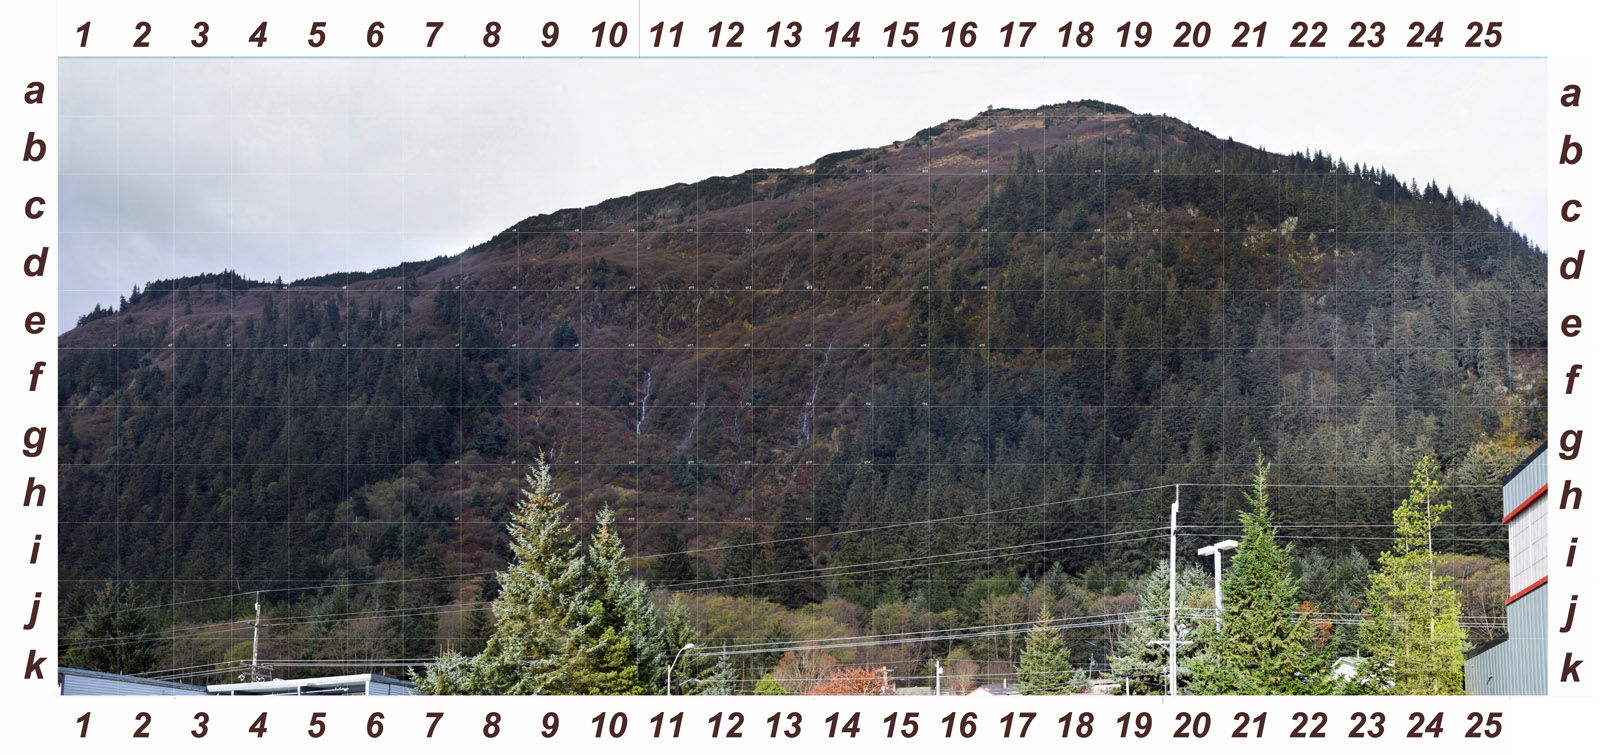 View of Behrends slide from JD High. It's about 2000 feet to the center of the slide area. Gridded for recording goat observations. Click to enlarge.